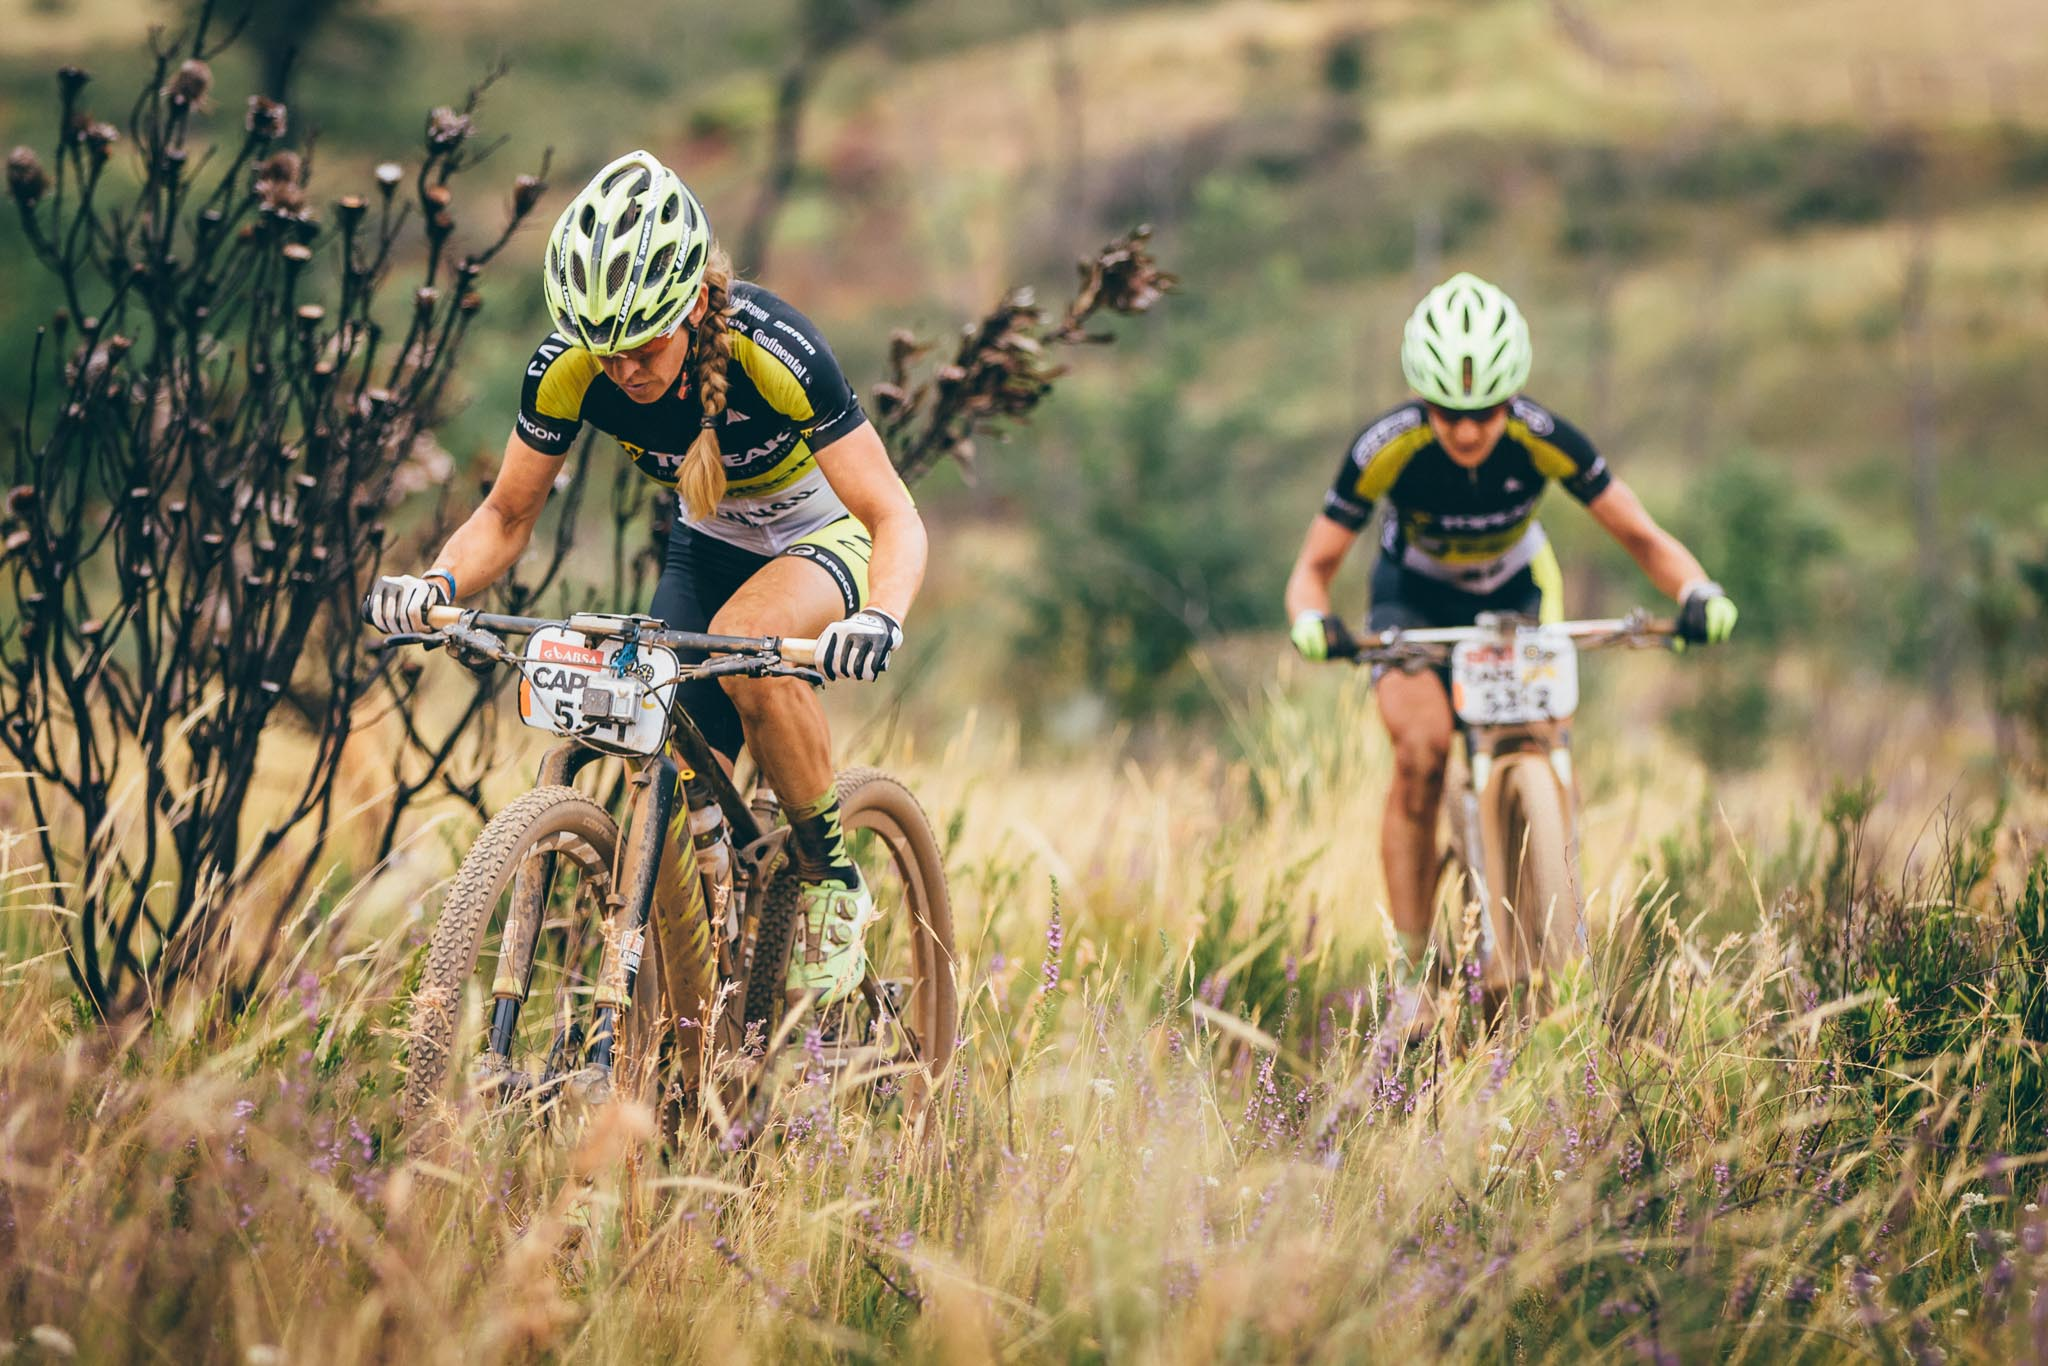 Team Topeak Ergon's Sally Bigham and Adel Morath during stage 4 of the 2016 Absa Cape Epic Mountain Bike stage race from the Cape Peninsula University of Technology in Wellington, South Africa on the 17th March 2016 Photo by Ewald Sadie/Cape Epic/SPORTZPICS PLEASE ENSURE THE APPROPRIATE CREDIT IS GIVEN TO THE PHOTOGRAPHER AND SPORTZPICS ALONG WITH THE ABSA CAPE EPIC {ace2016}